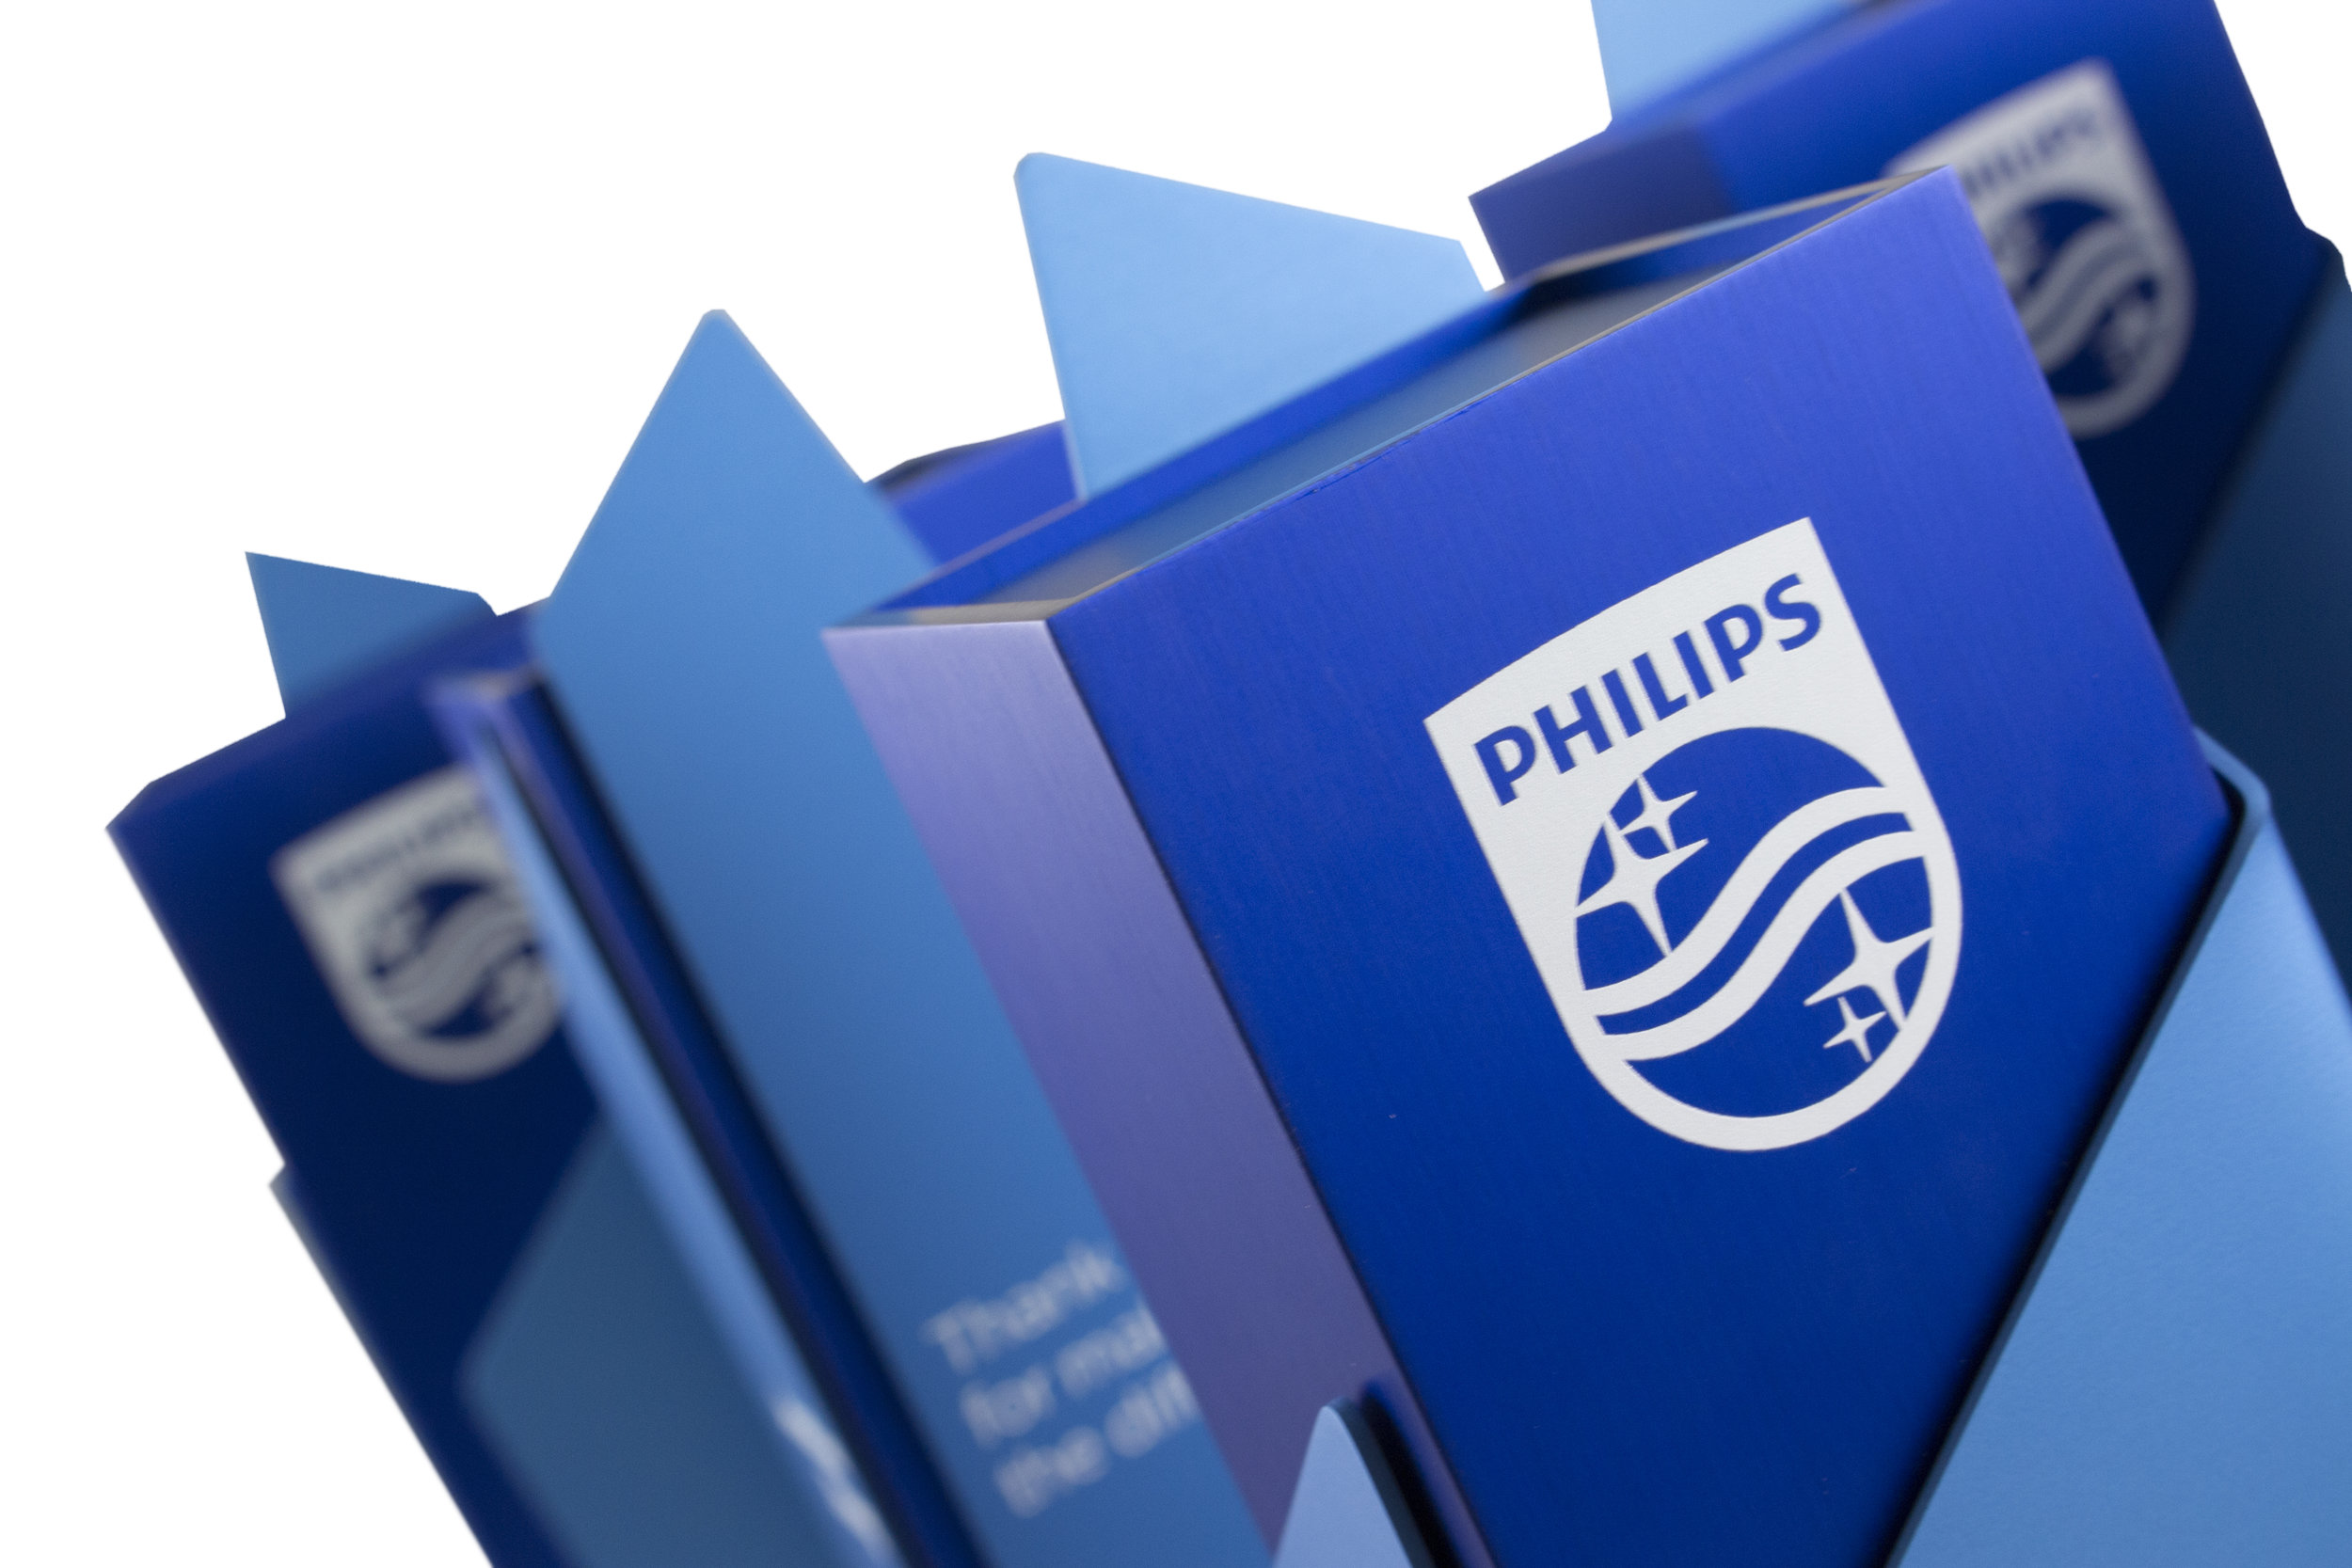 philips 2016 trophy group angled close up BryceEdit.jpg